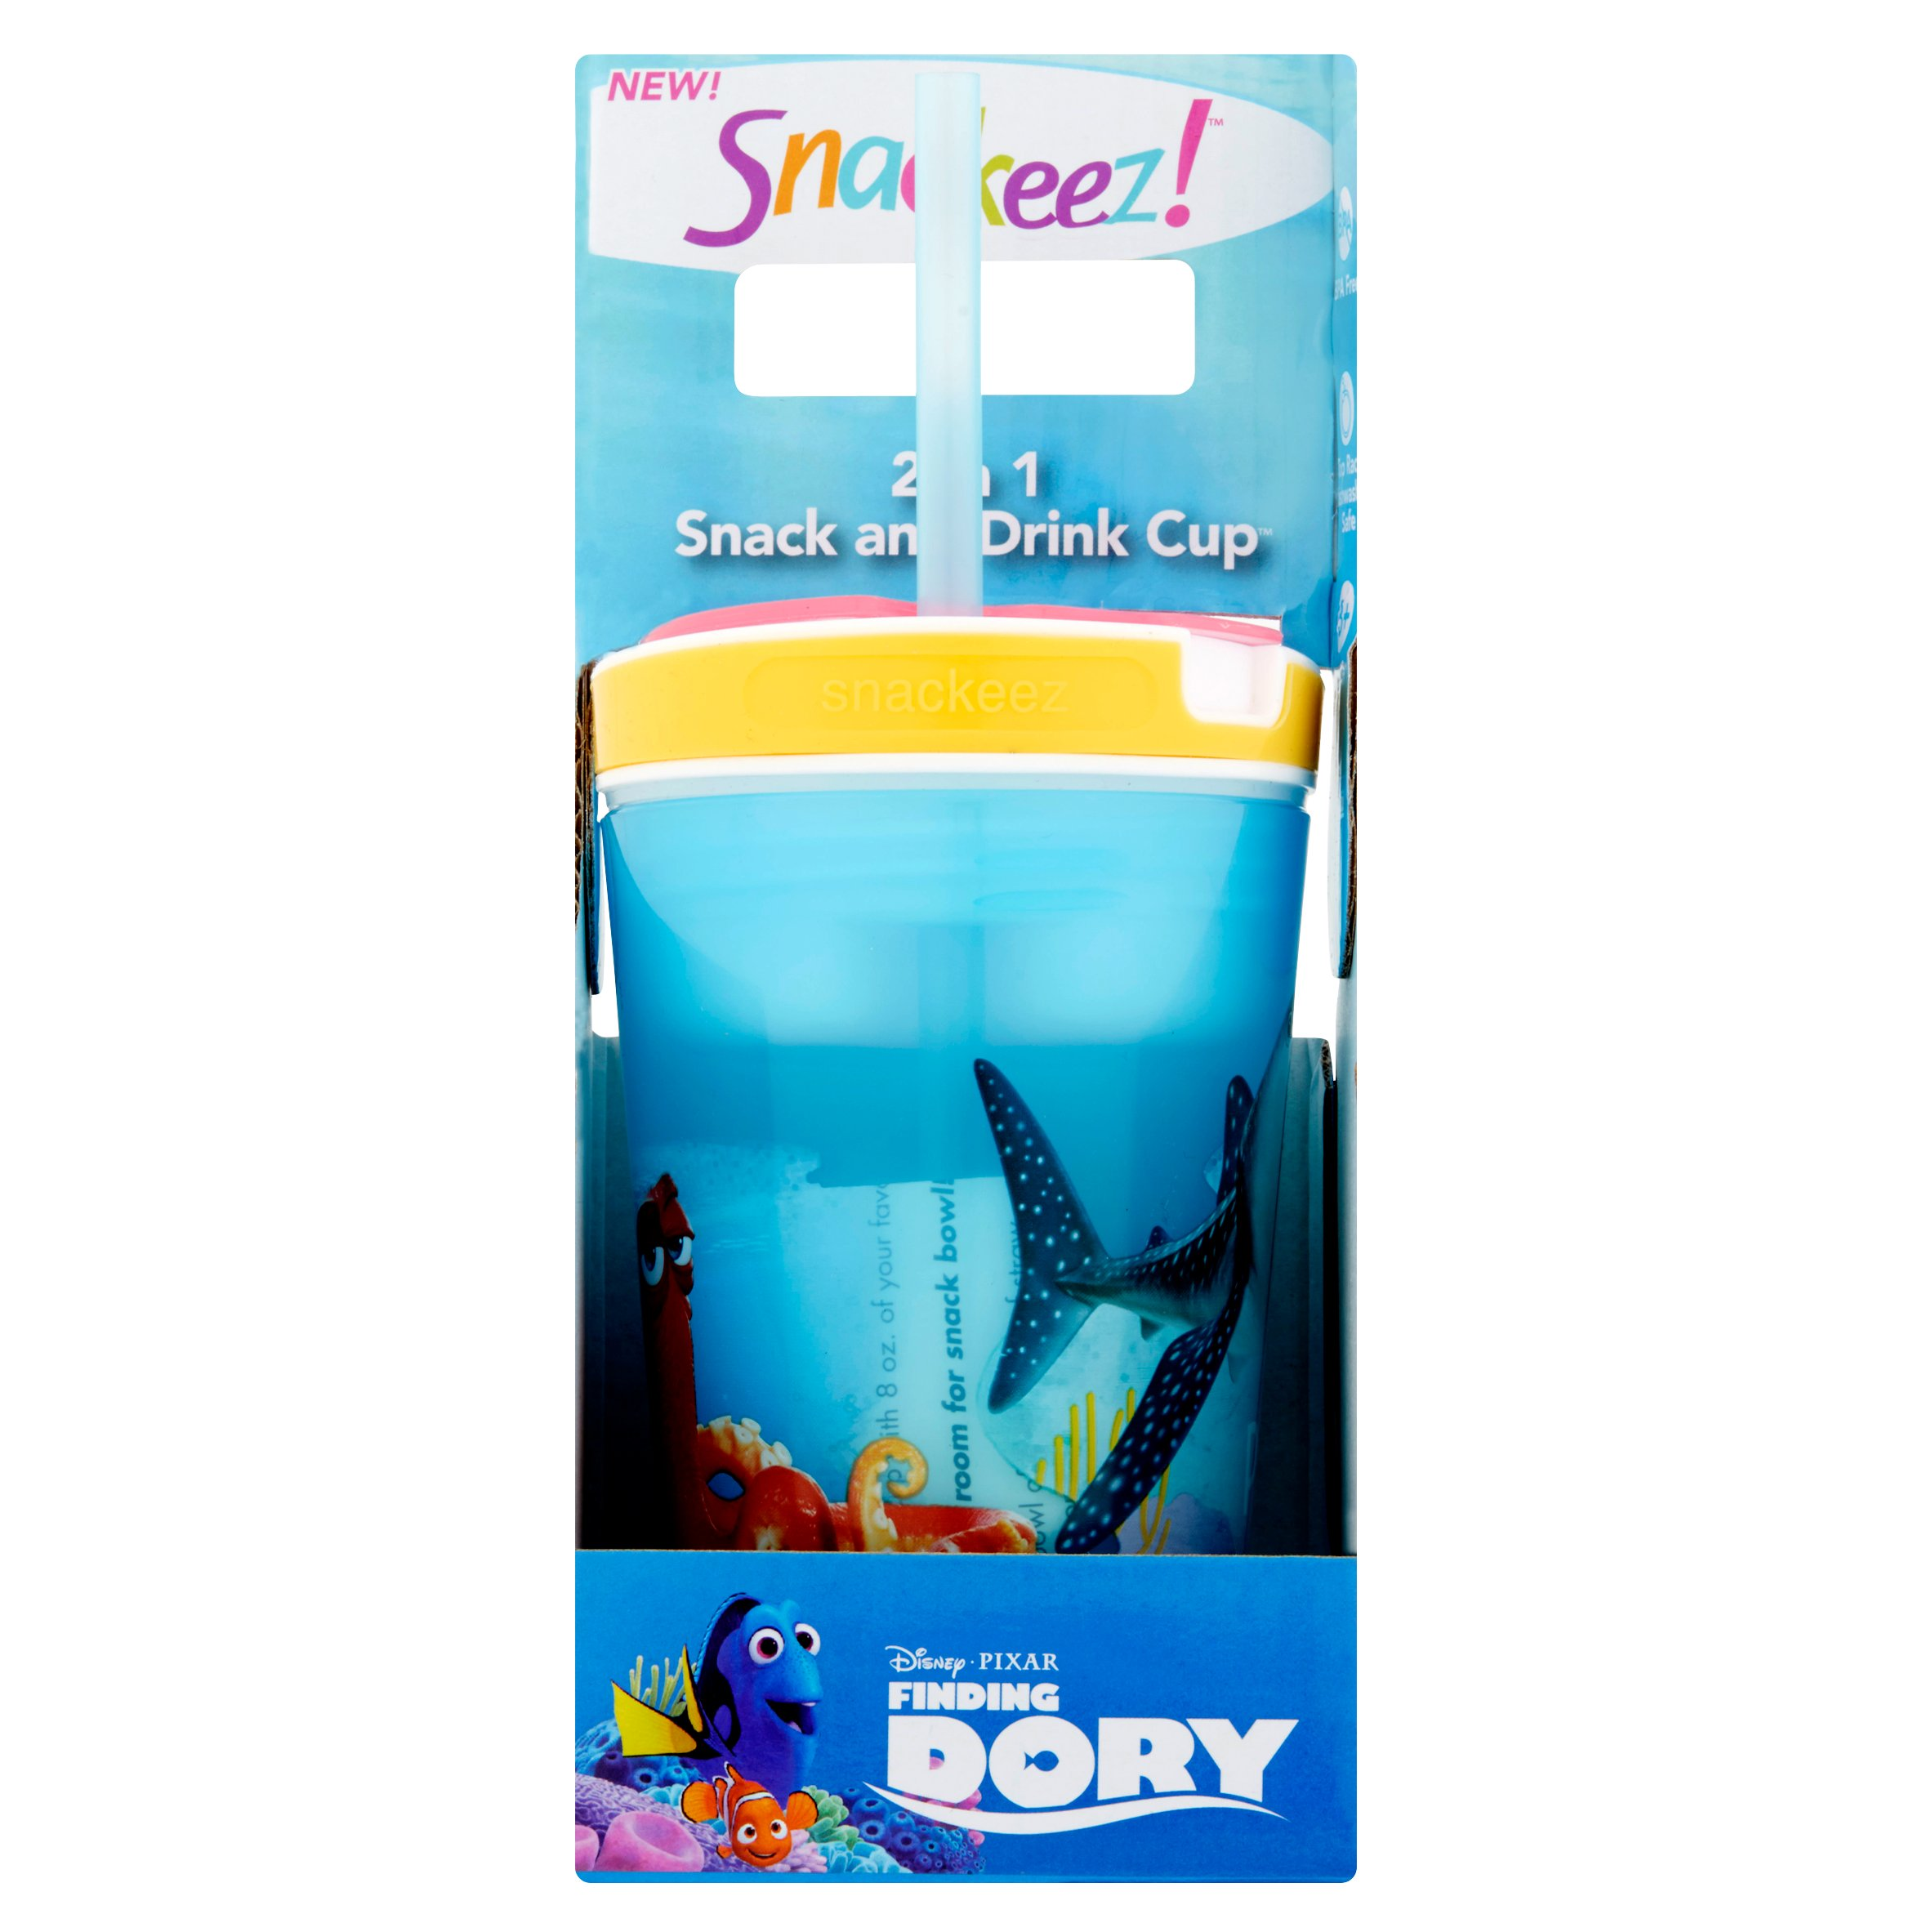 Snackeez! 2 in 1 Snack and Drink Cup Age 3+